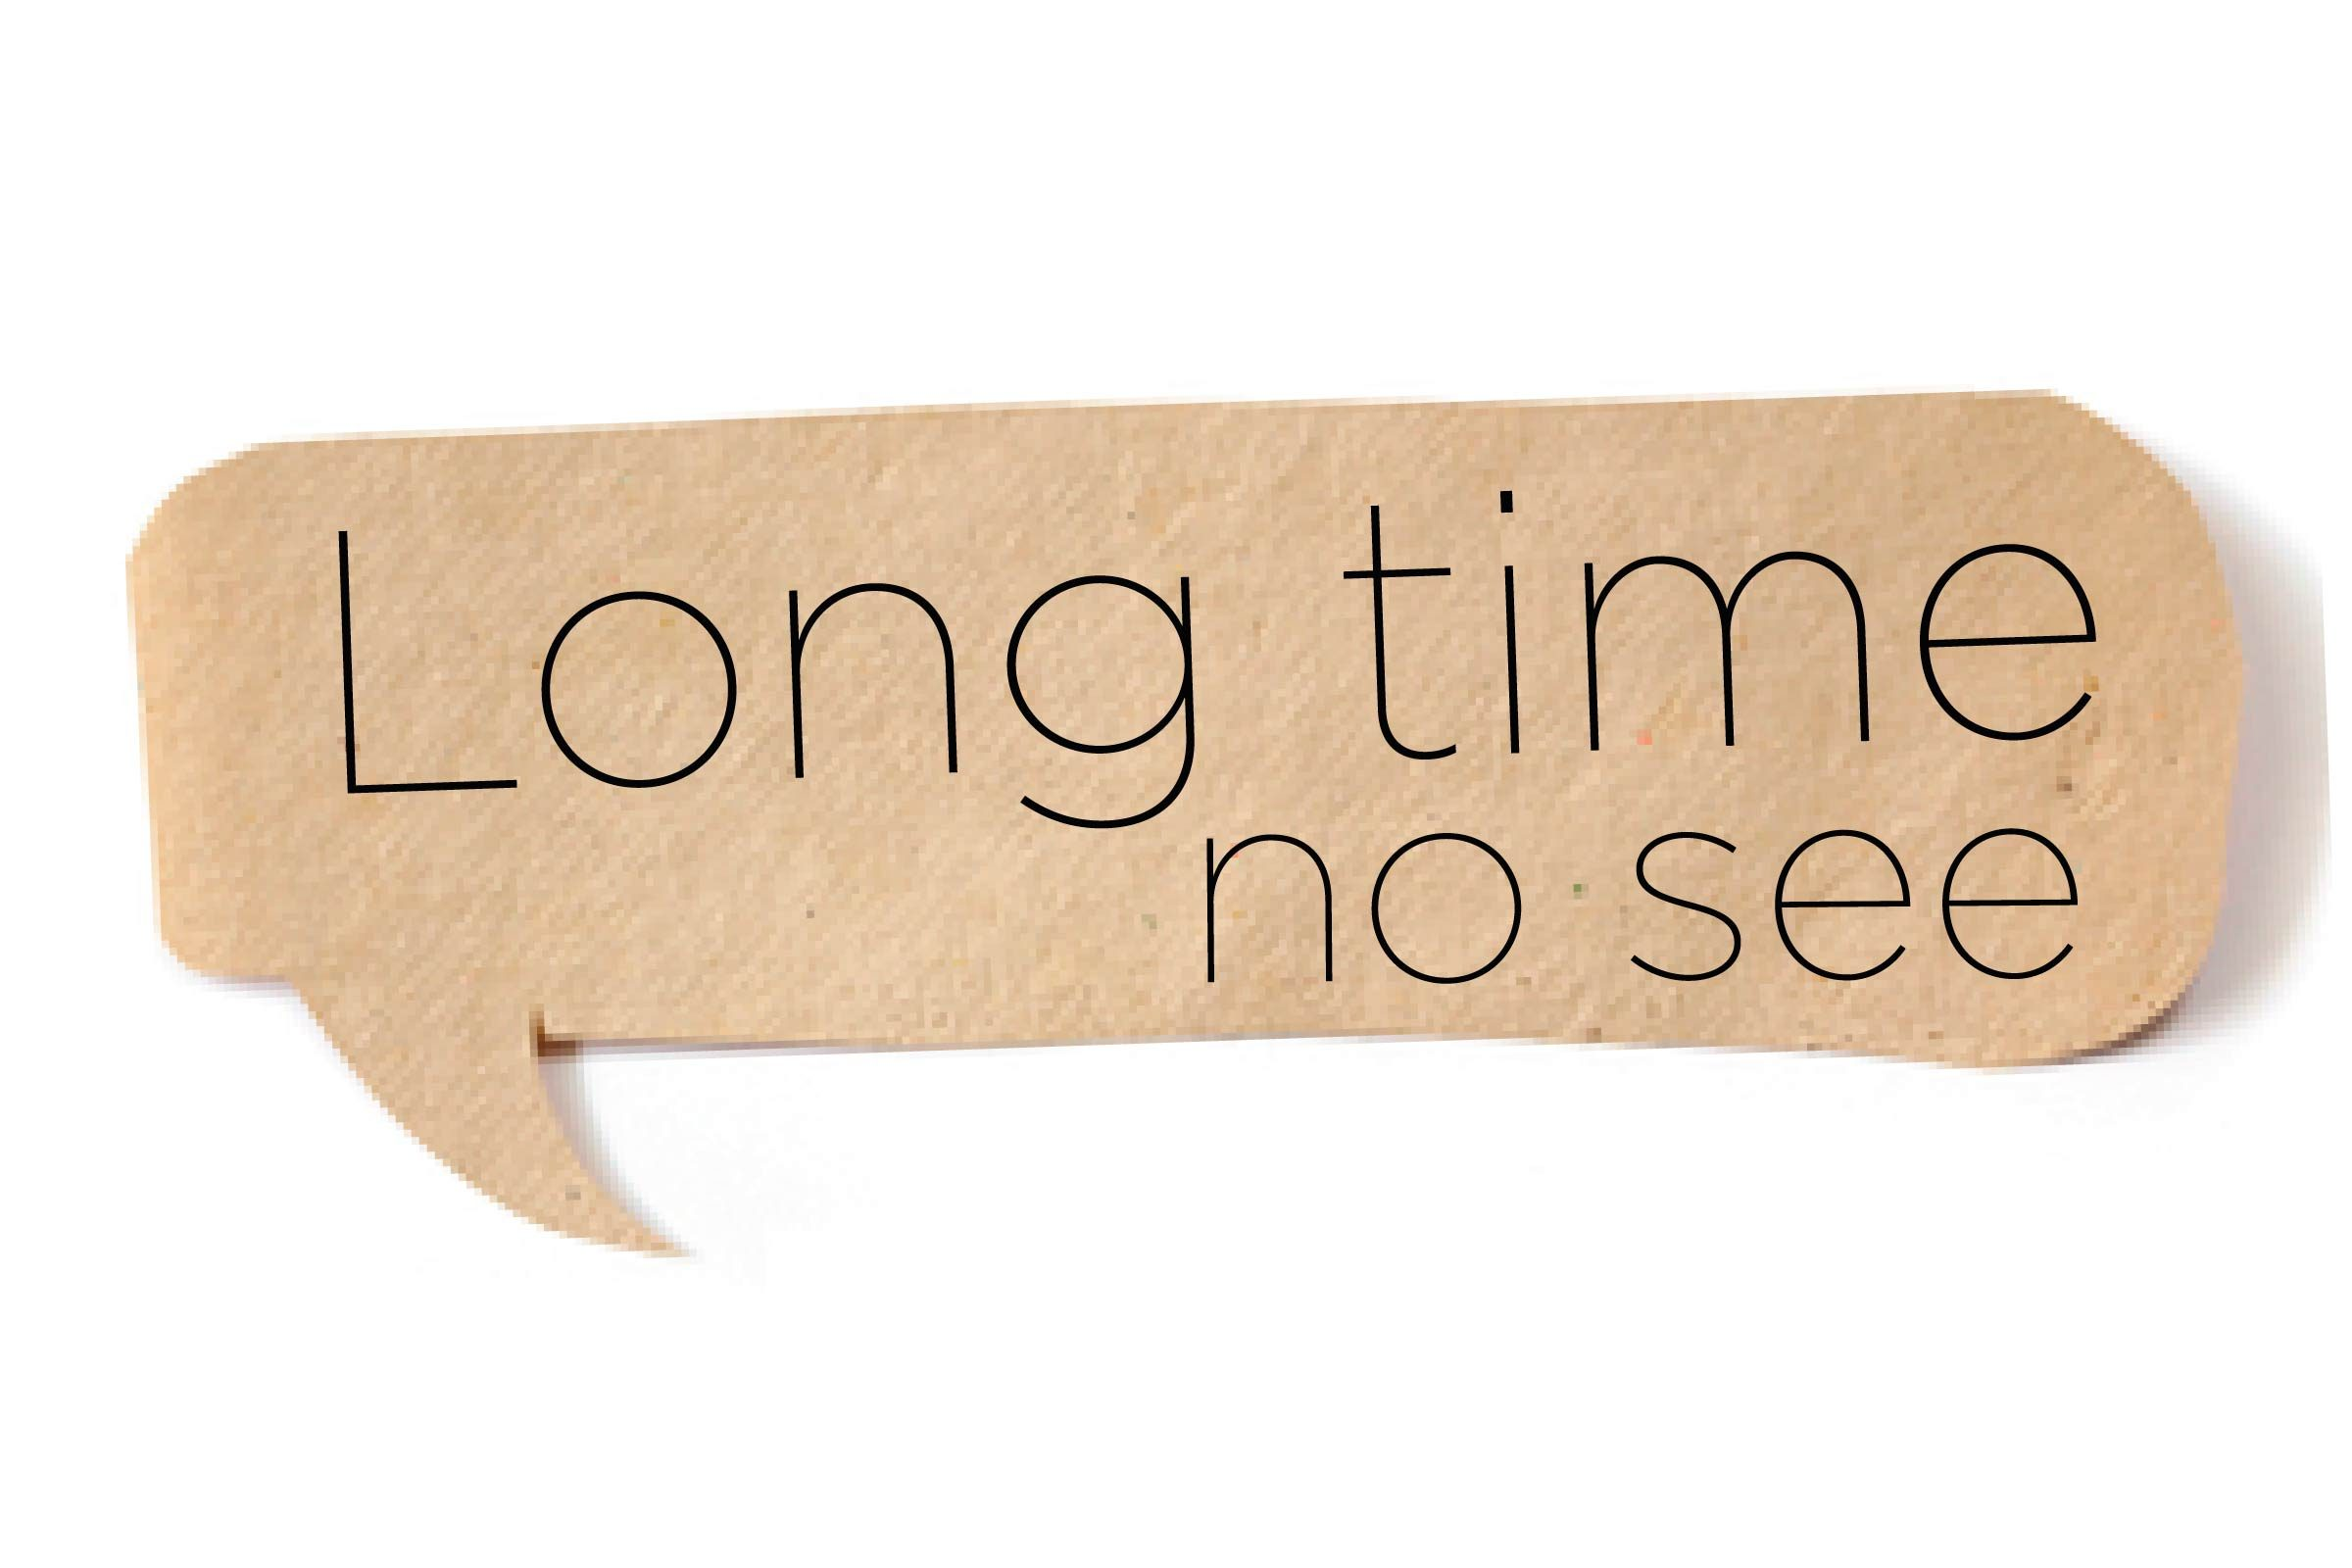 Offensive words - Long time no see